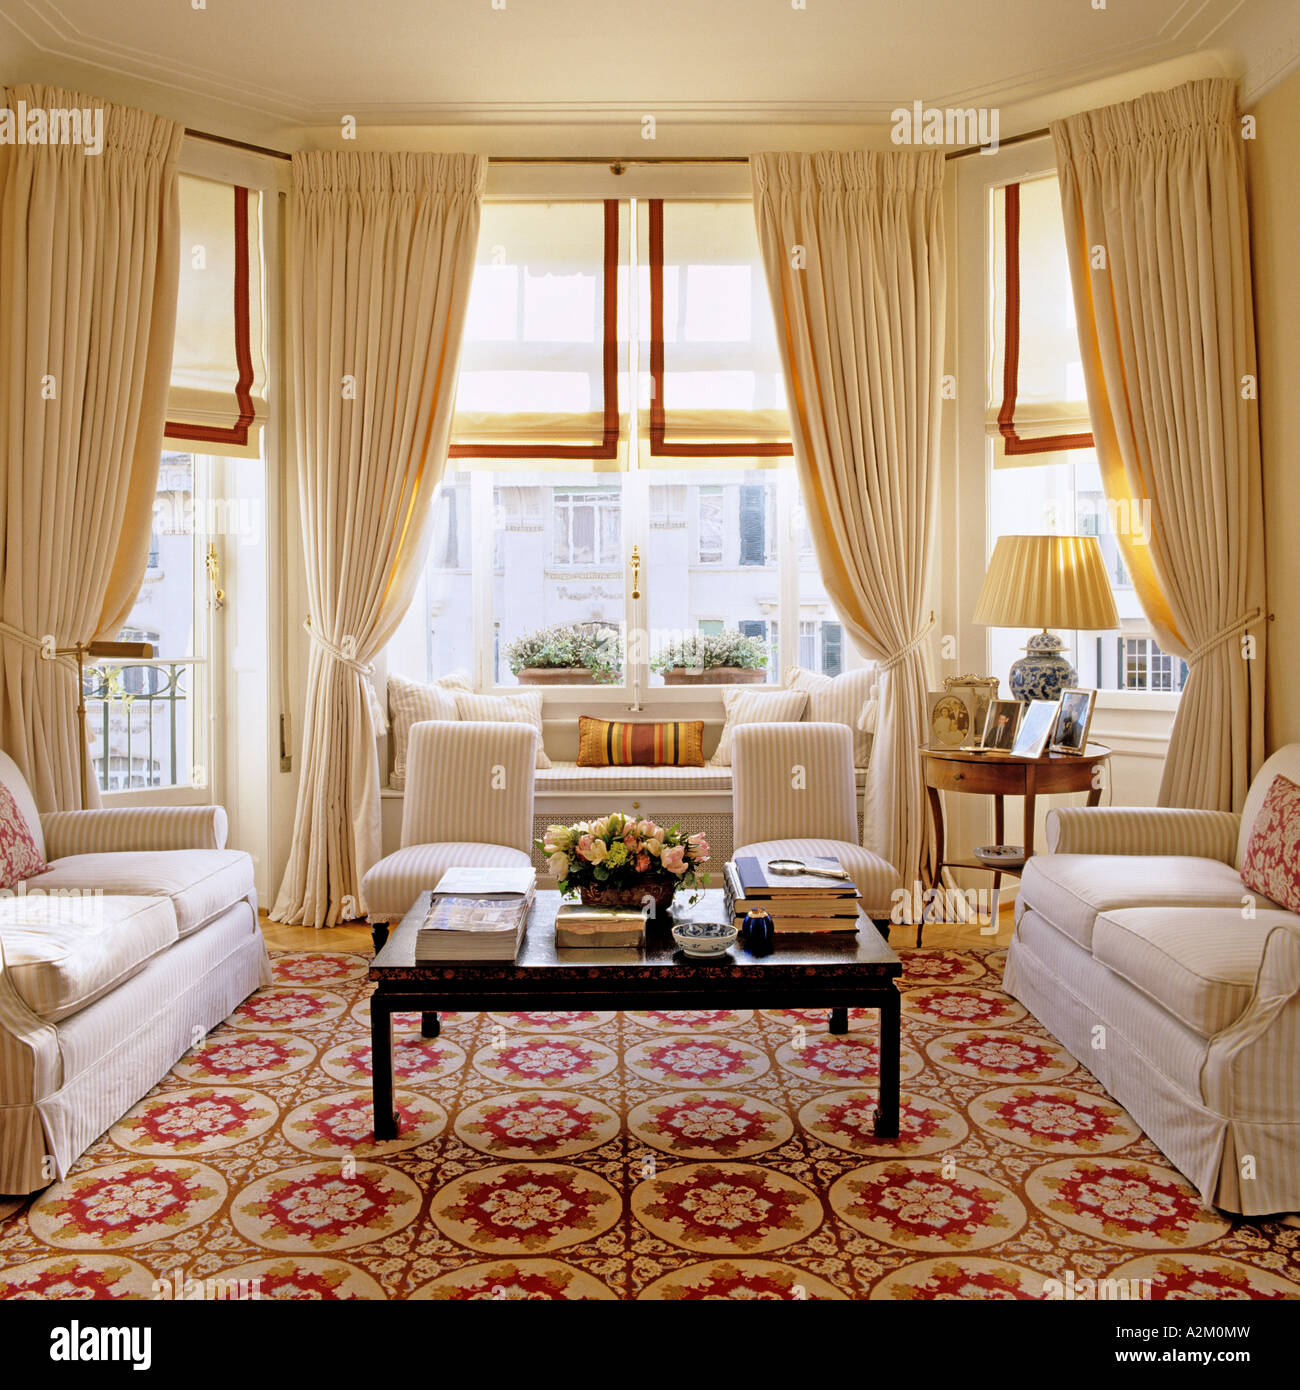 Large Living Room With Three Sofas Patterned Carpet And